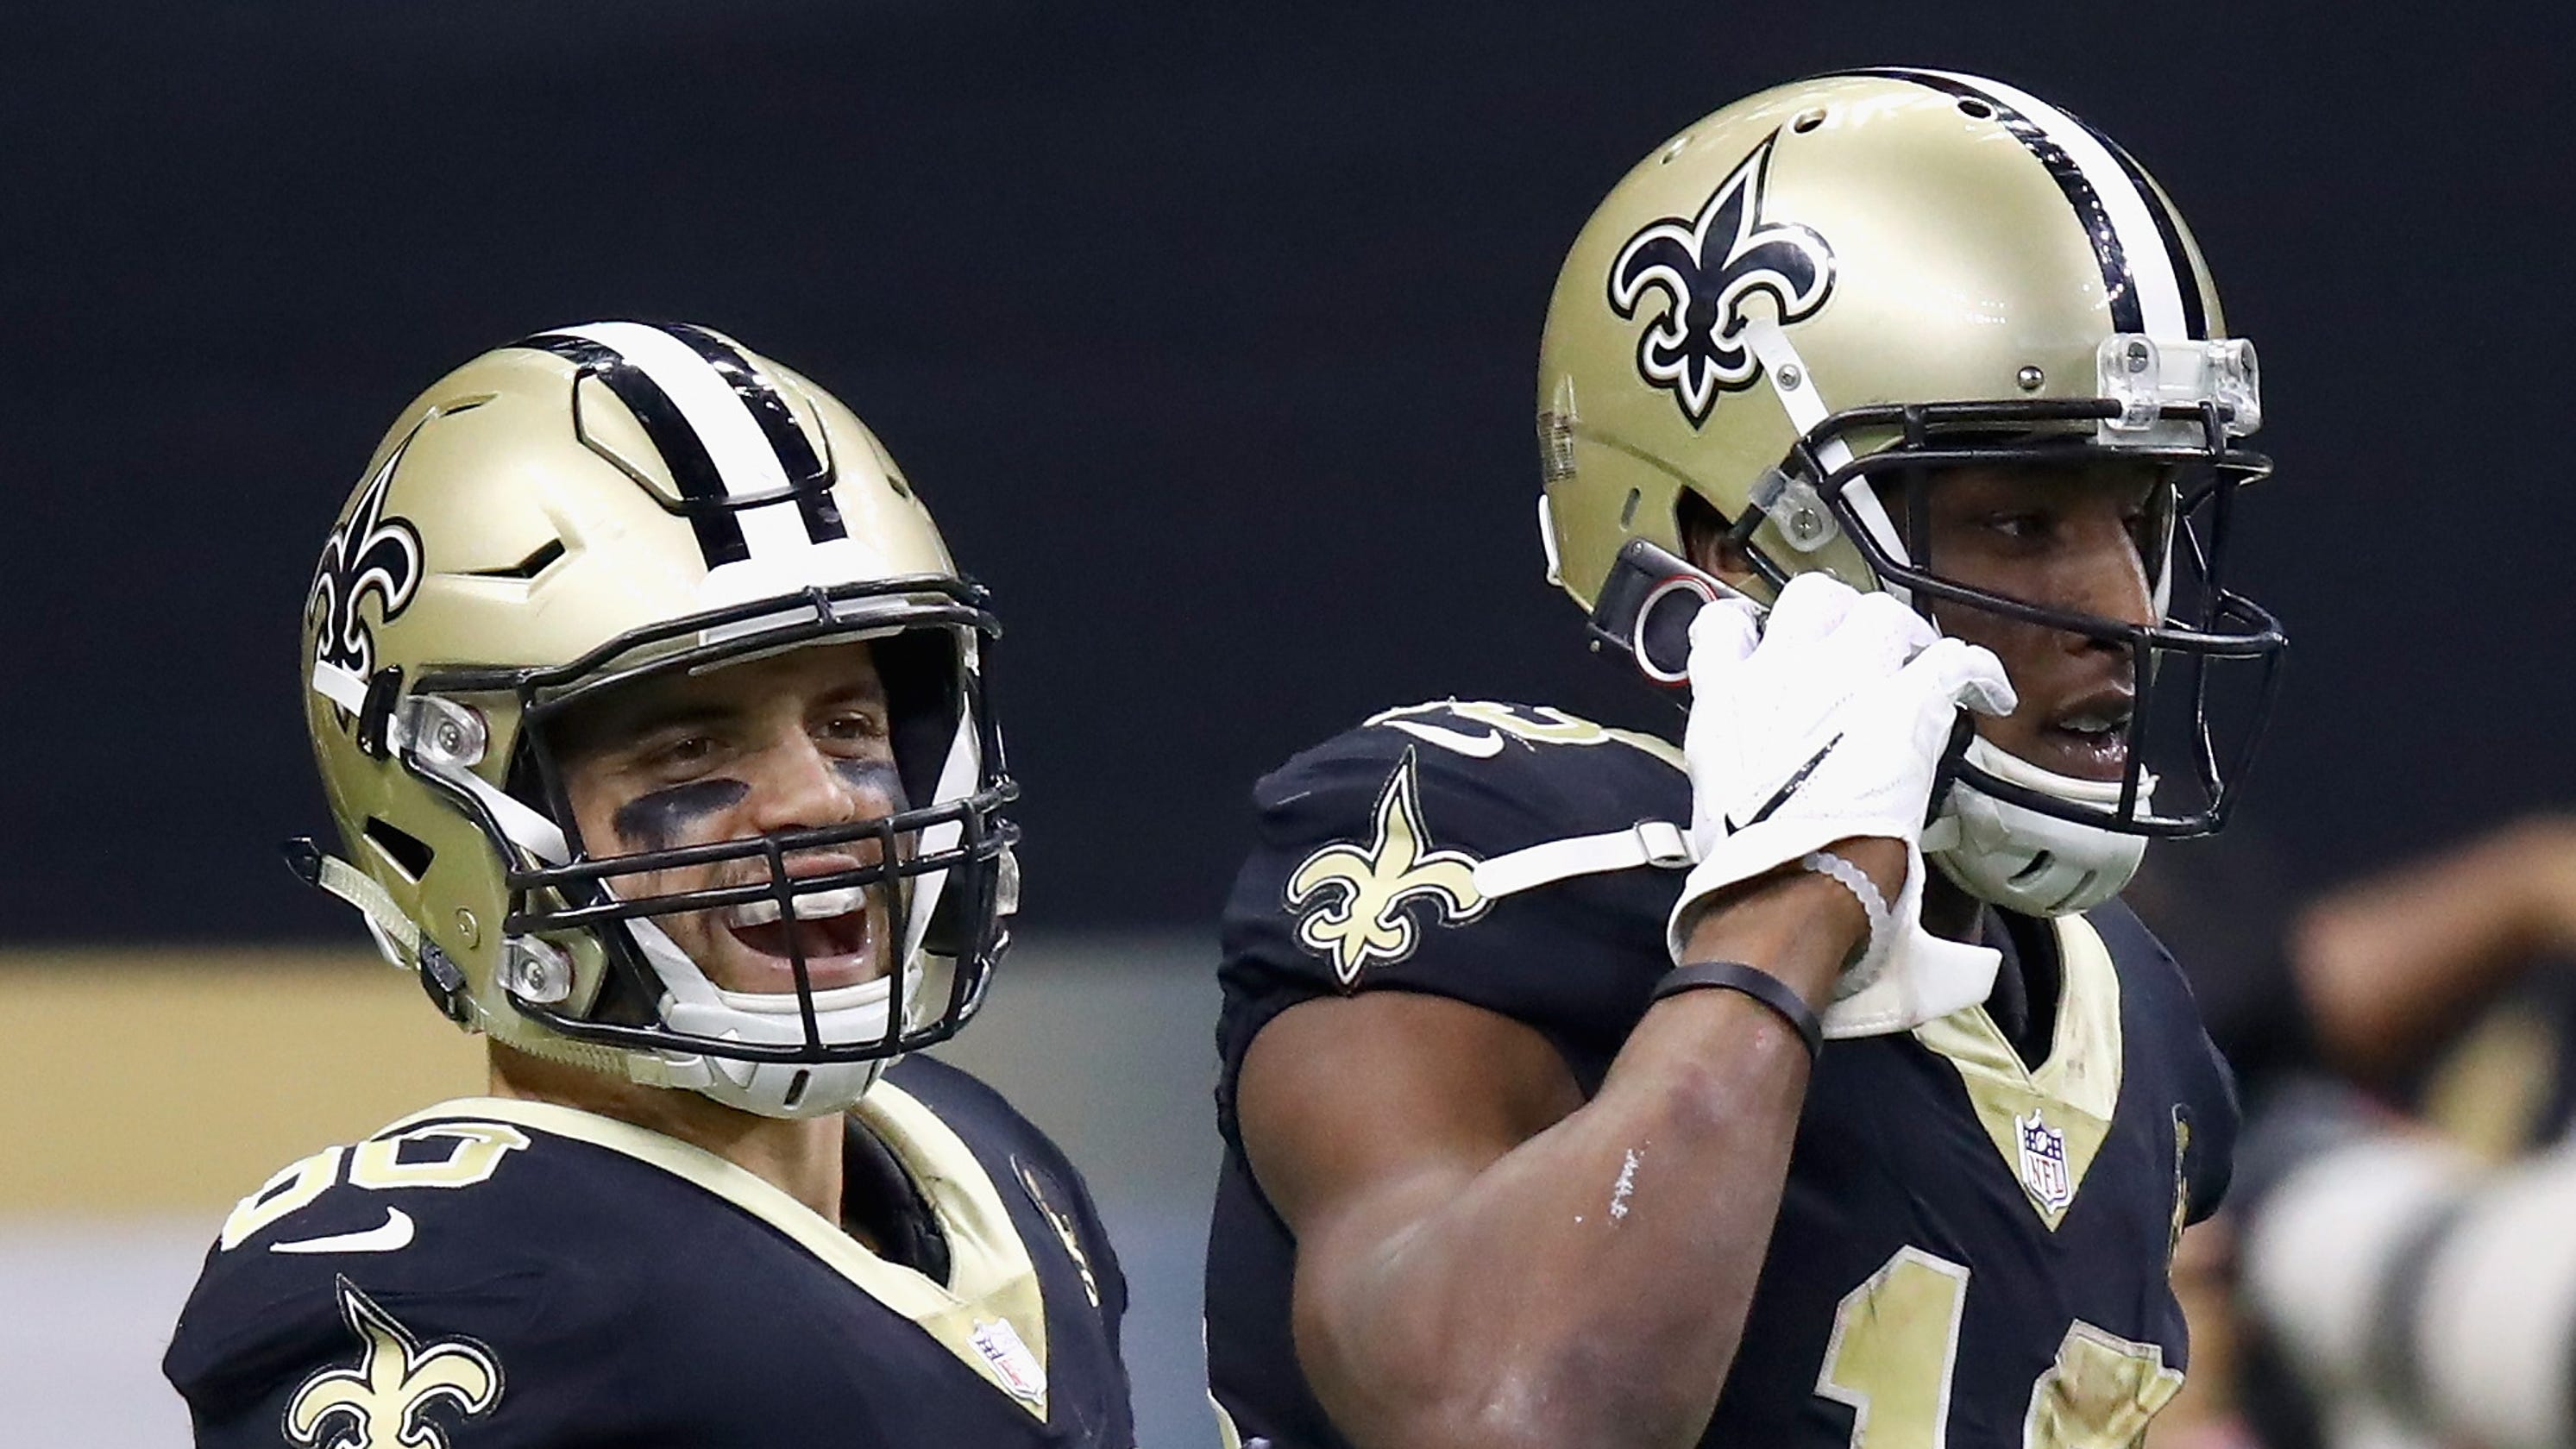 Michael Thomas replicates ex-Saints WR Joe Horn s famous cellphone  celebration vs. Rams 4a6c9eca3